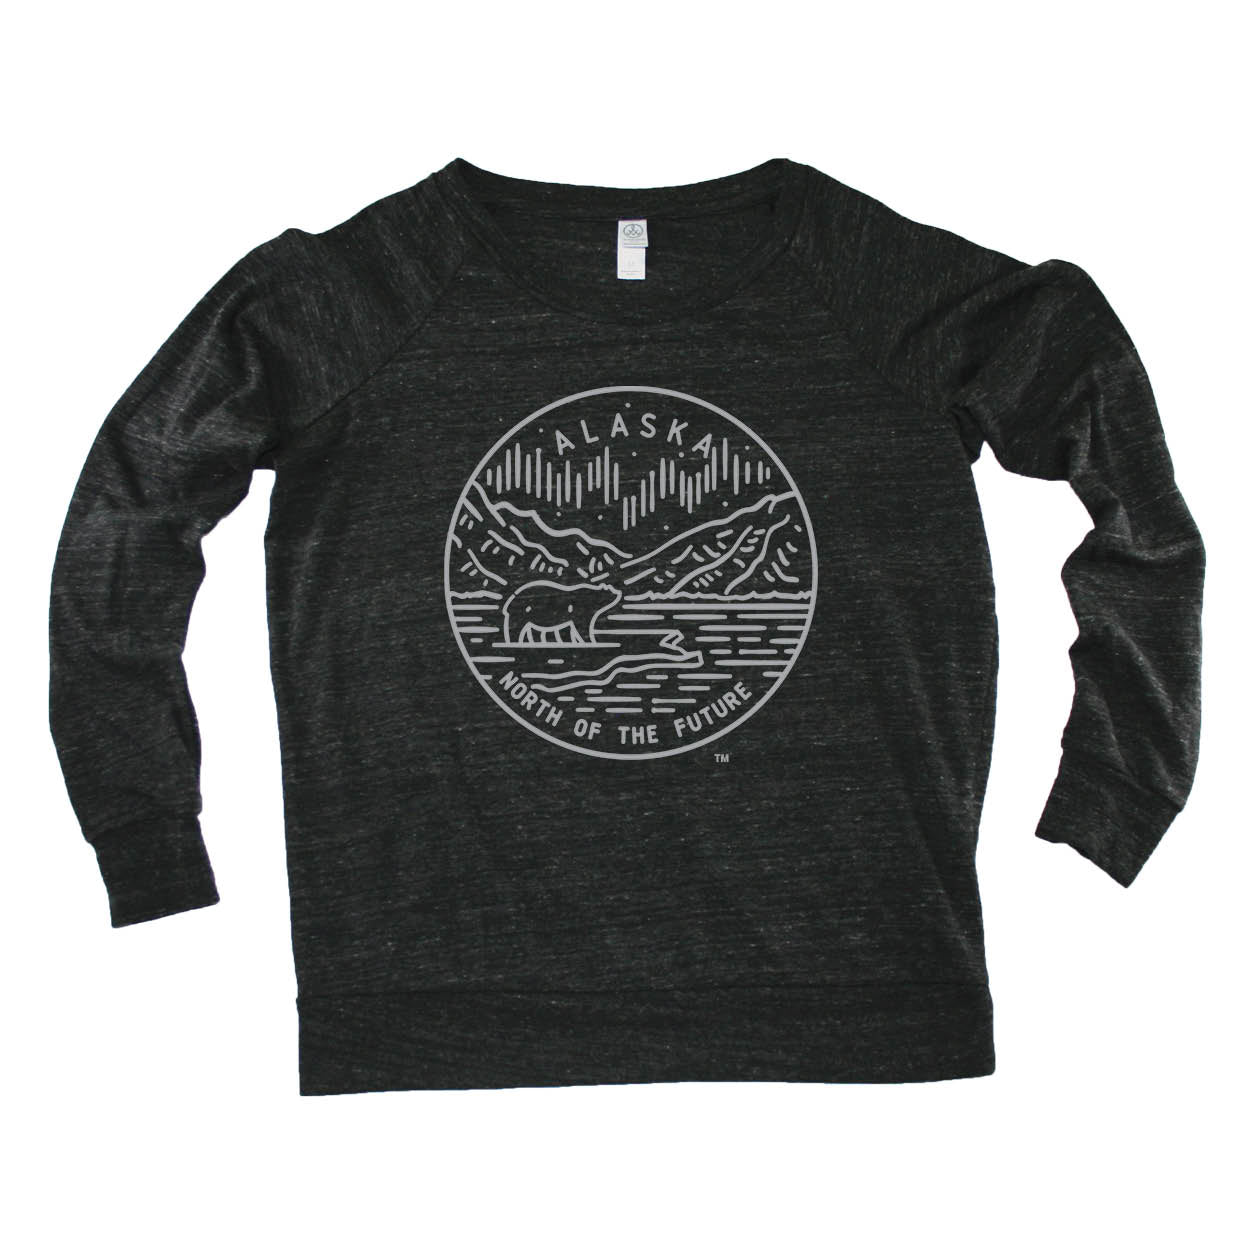 ALASKA LADIES' SLOUCHY | STATE SEAL |  NORTH OF THE FUTURE